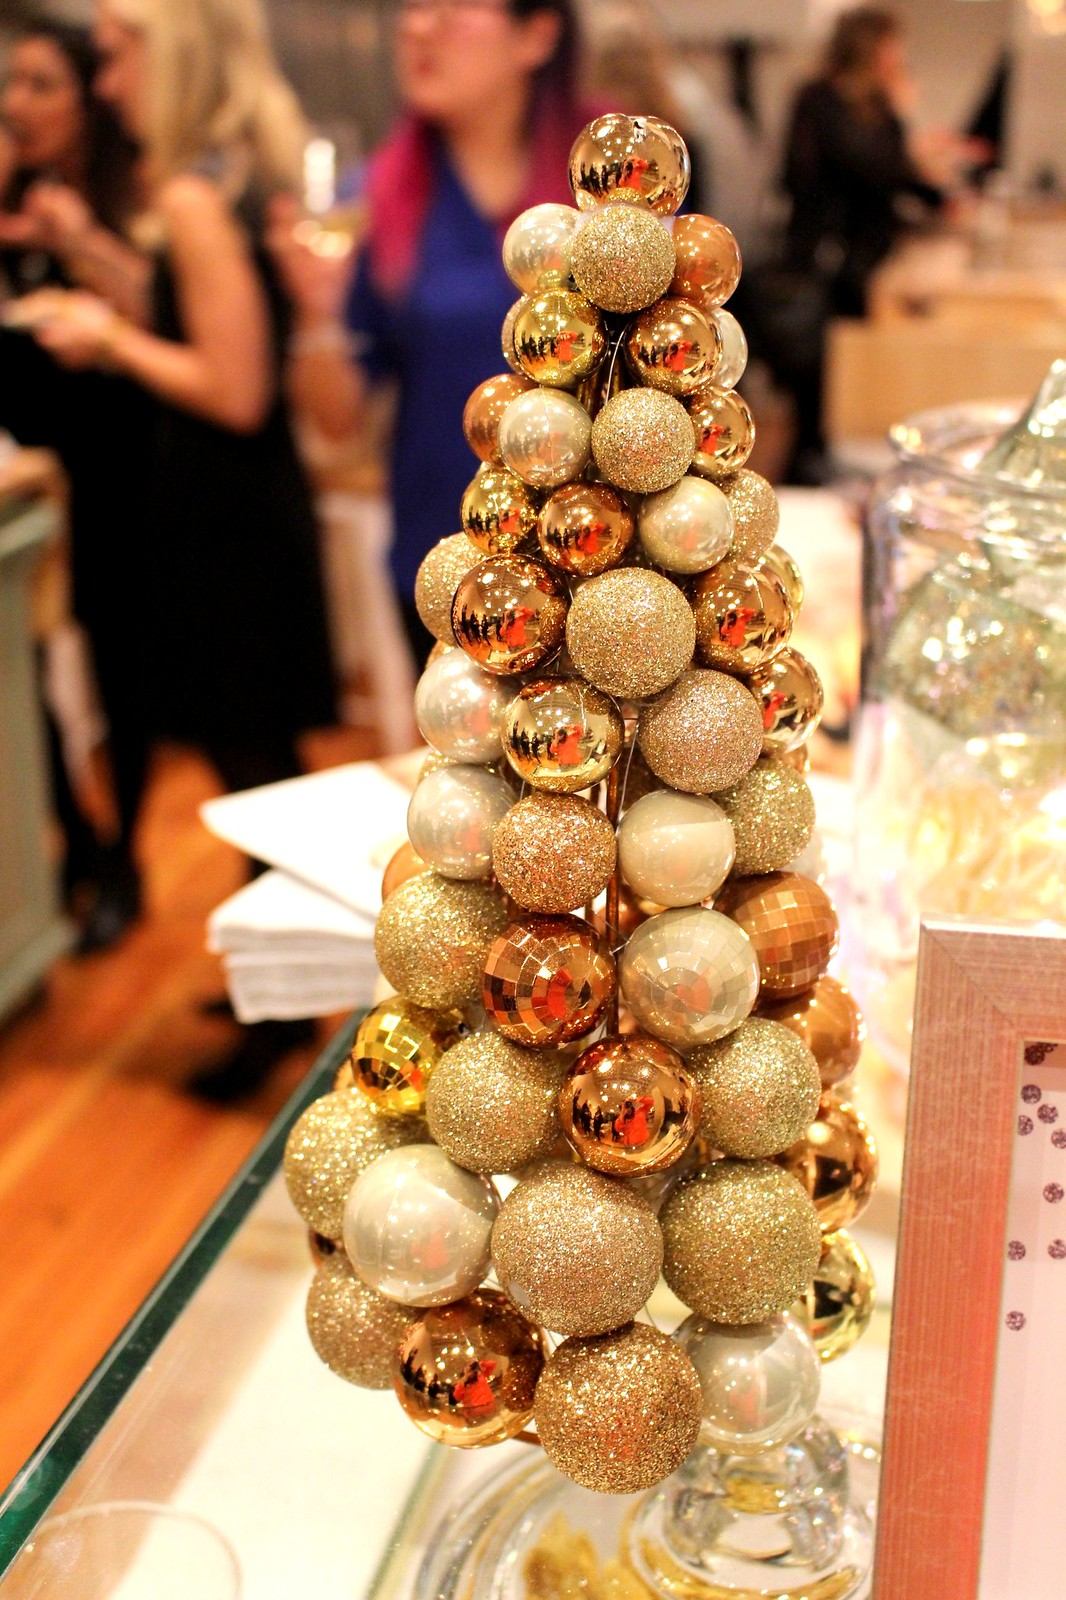 President's Choice Holiday Insiders Collection Party at Nourish Café